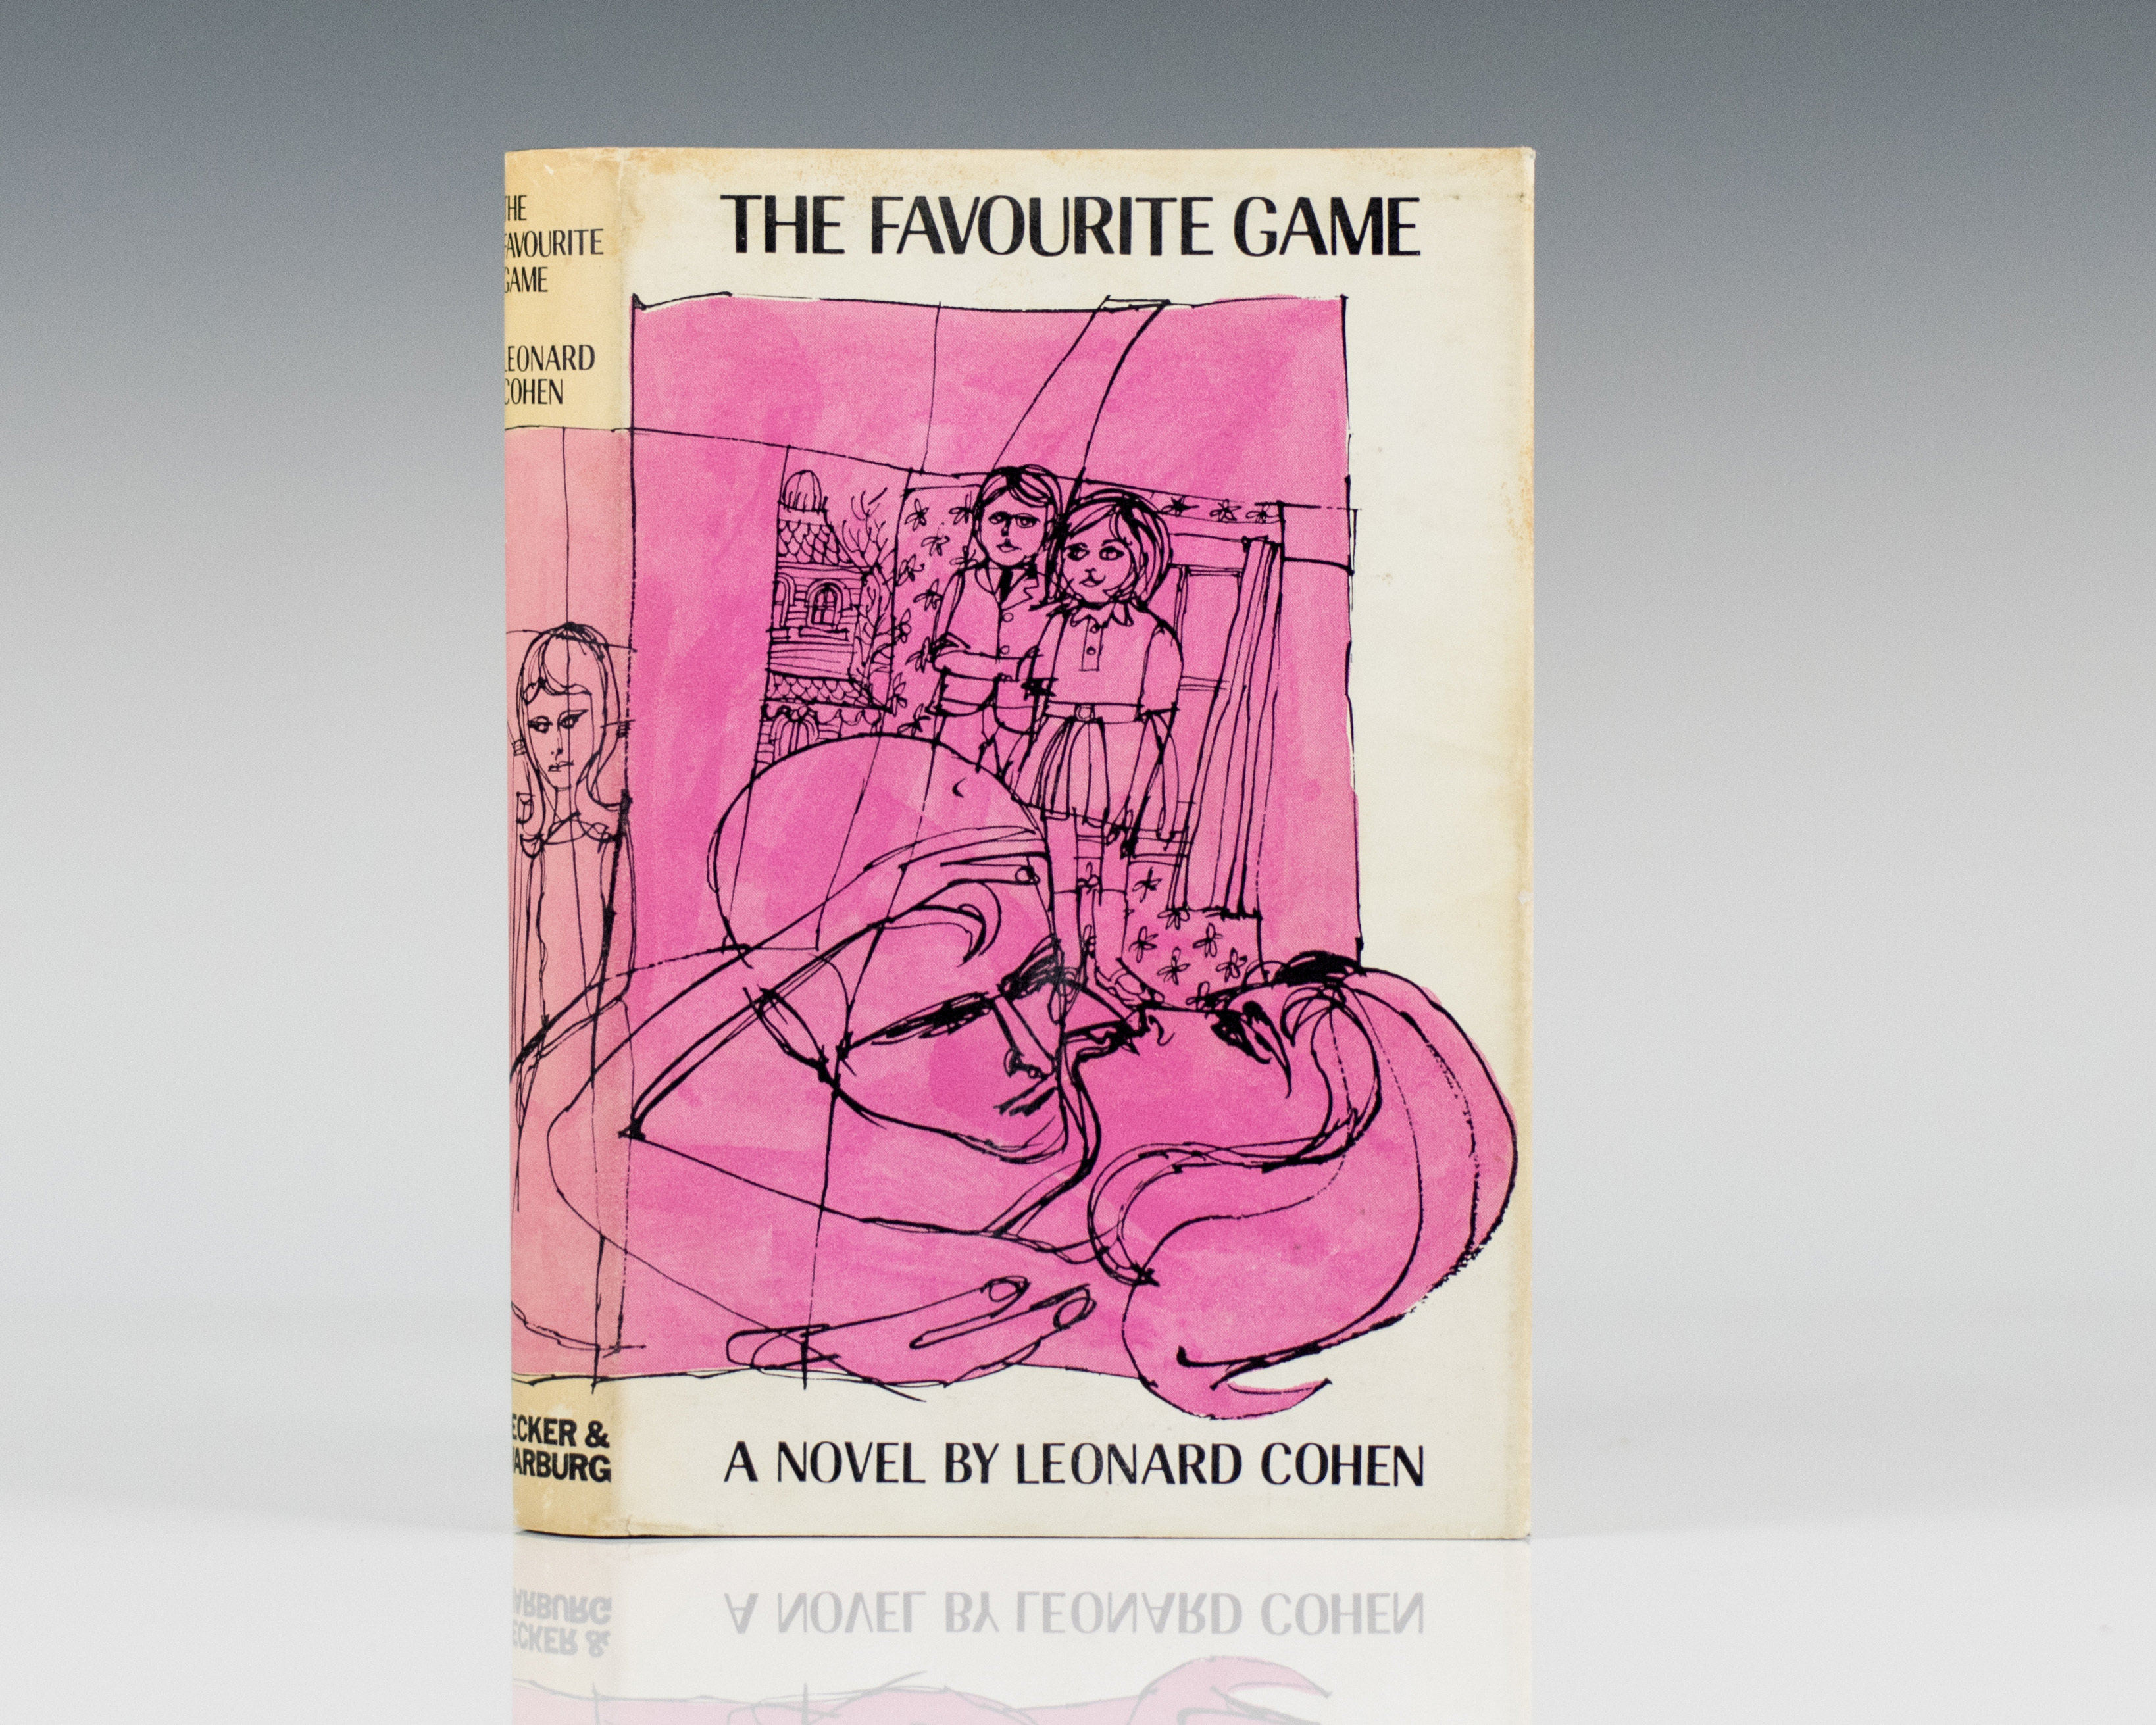 《The Favorite Game(譯:至愛遊戲)》, Leonard Cohen, First Edition Signed 圖片:AbeBooks.com